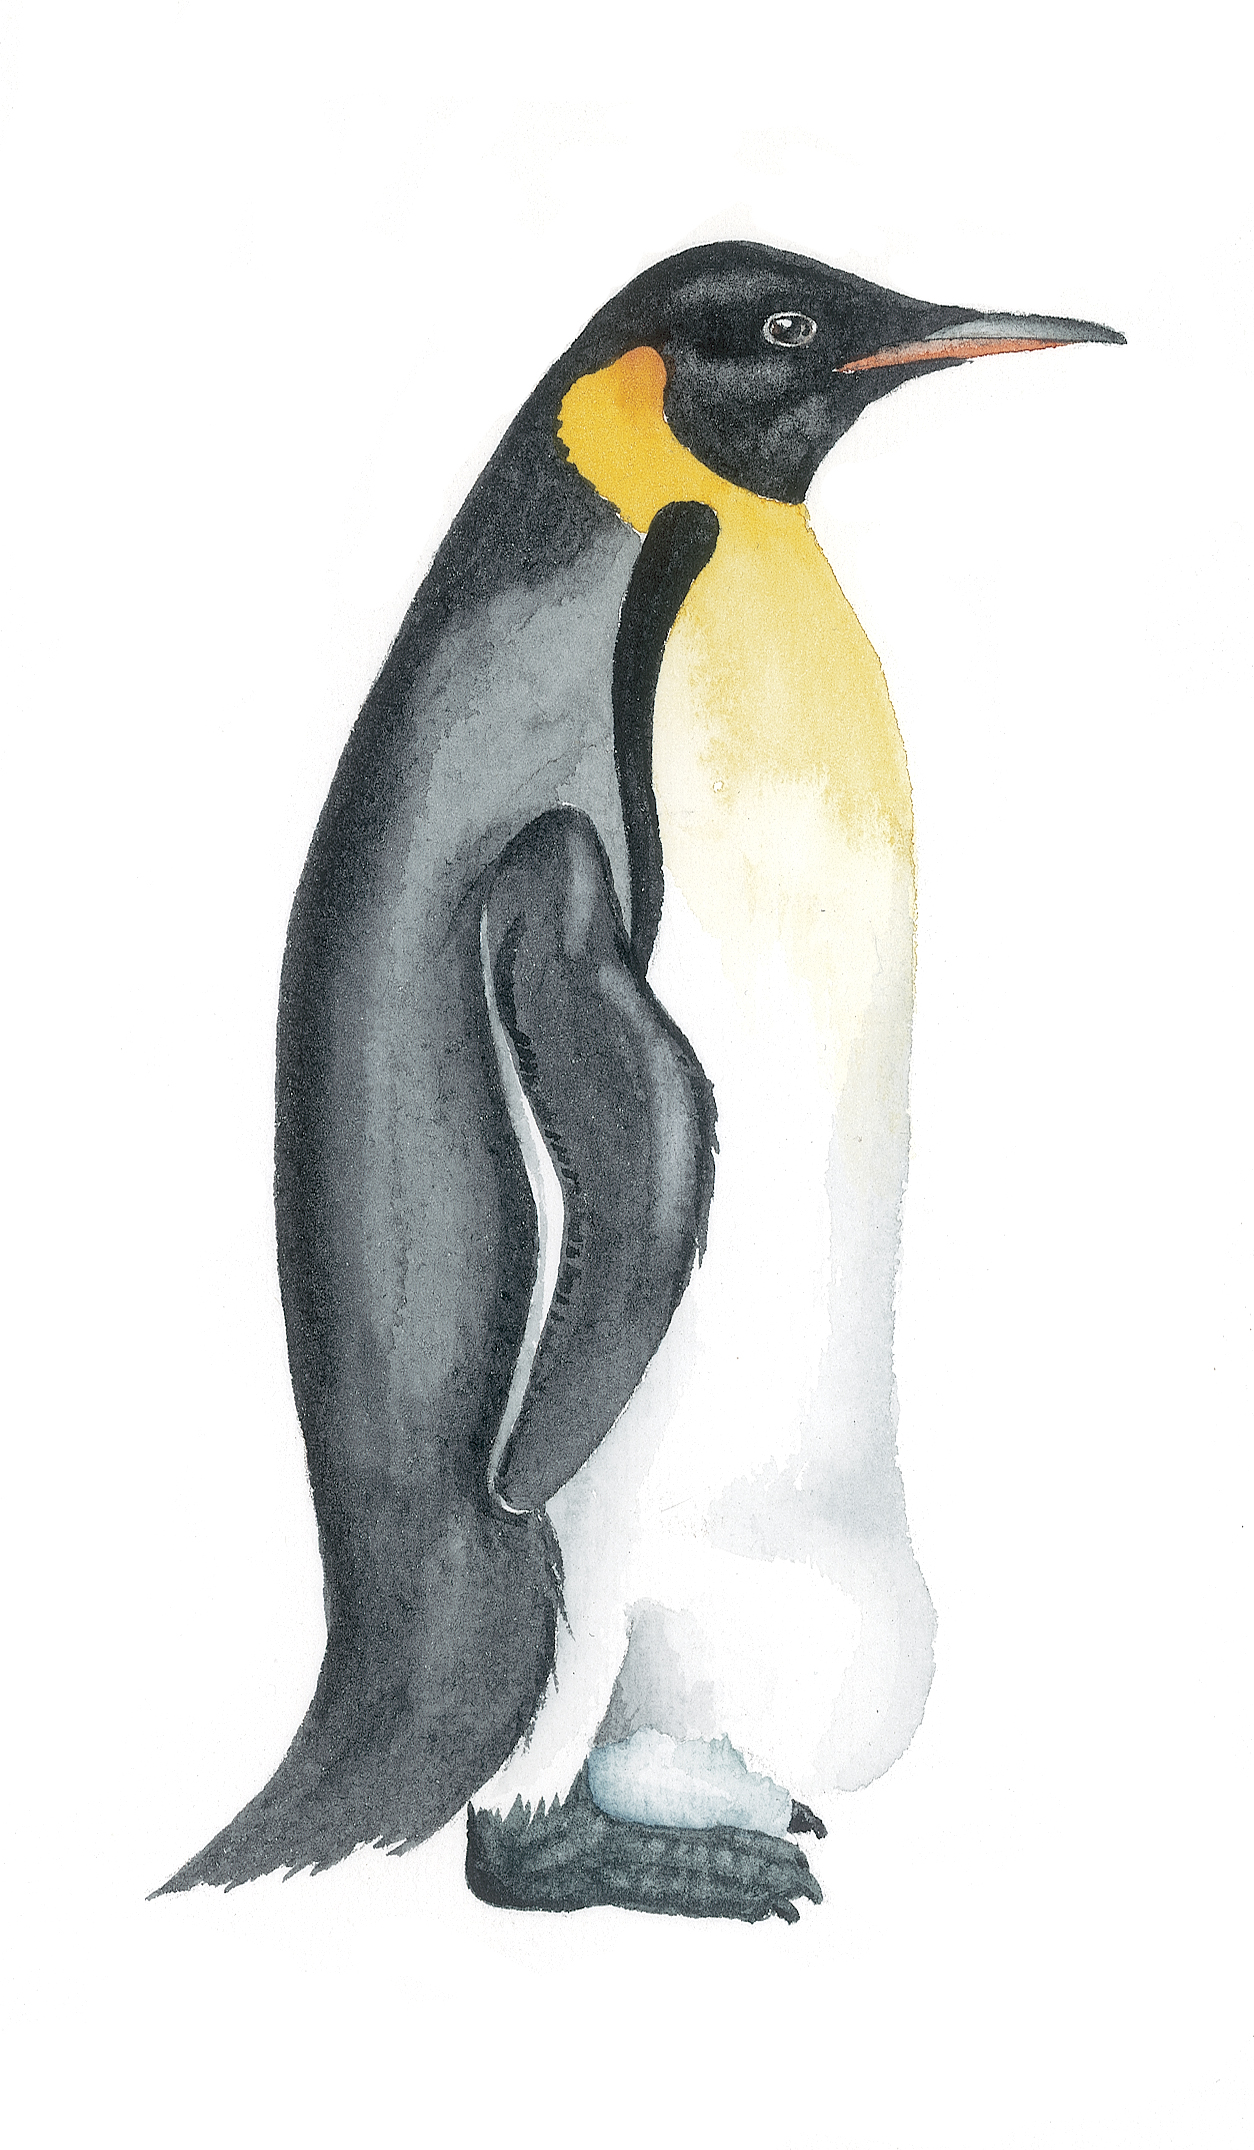 Watercolor books by search press - 12 Days Of Penguin On The Second Day Of Penguin